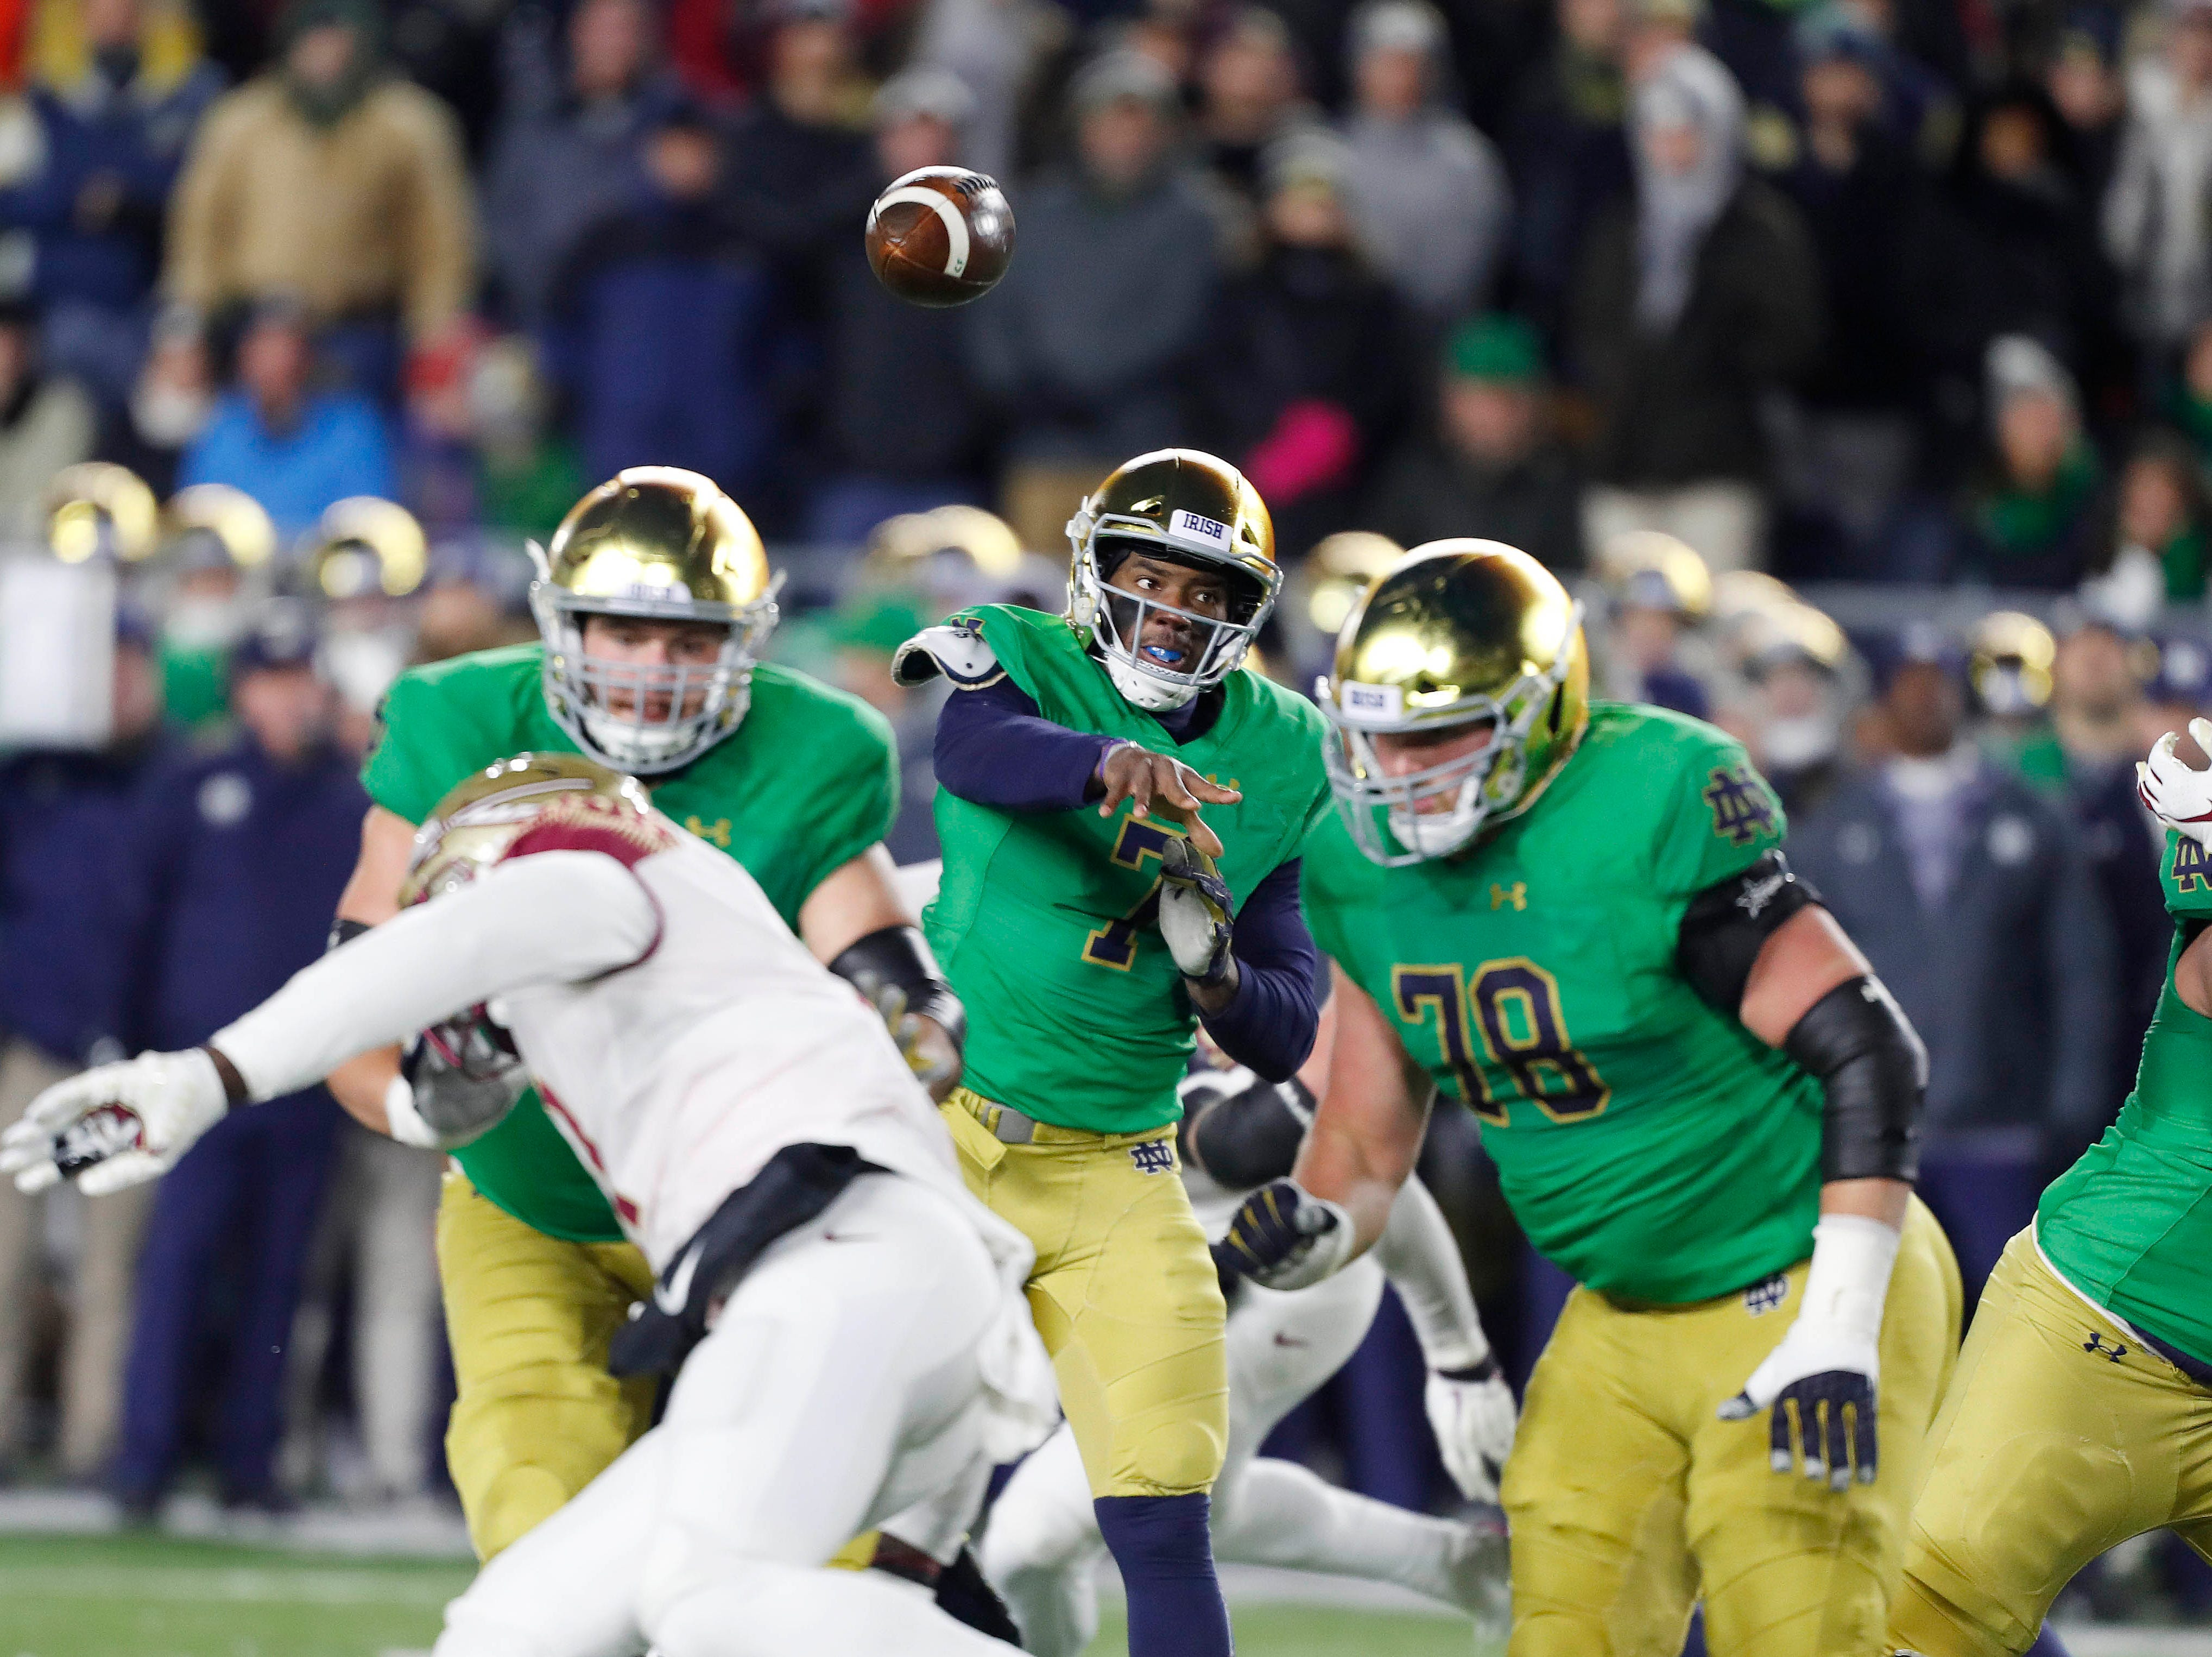 Nov 10, 2018; South Bend, IN, USA; Notre Dame Fighting Irish quarterback Brandon Wimbush (7) throws a pass against the Florida State Seminoles during the first quarter at Notre Dame Stadium. Mandatory Credit: Brian Spurlock-USA TODAY Sports